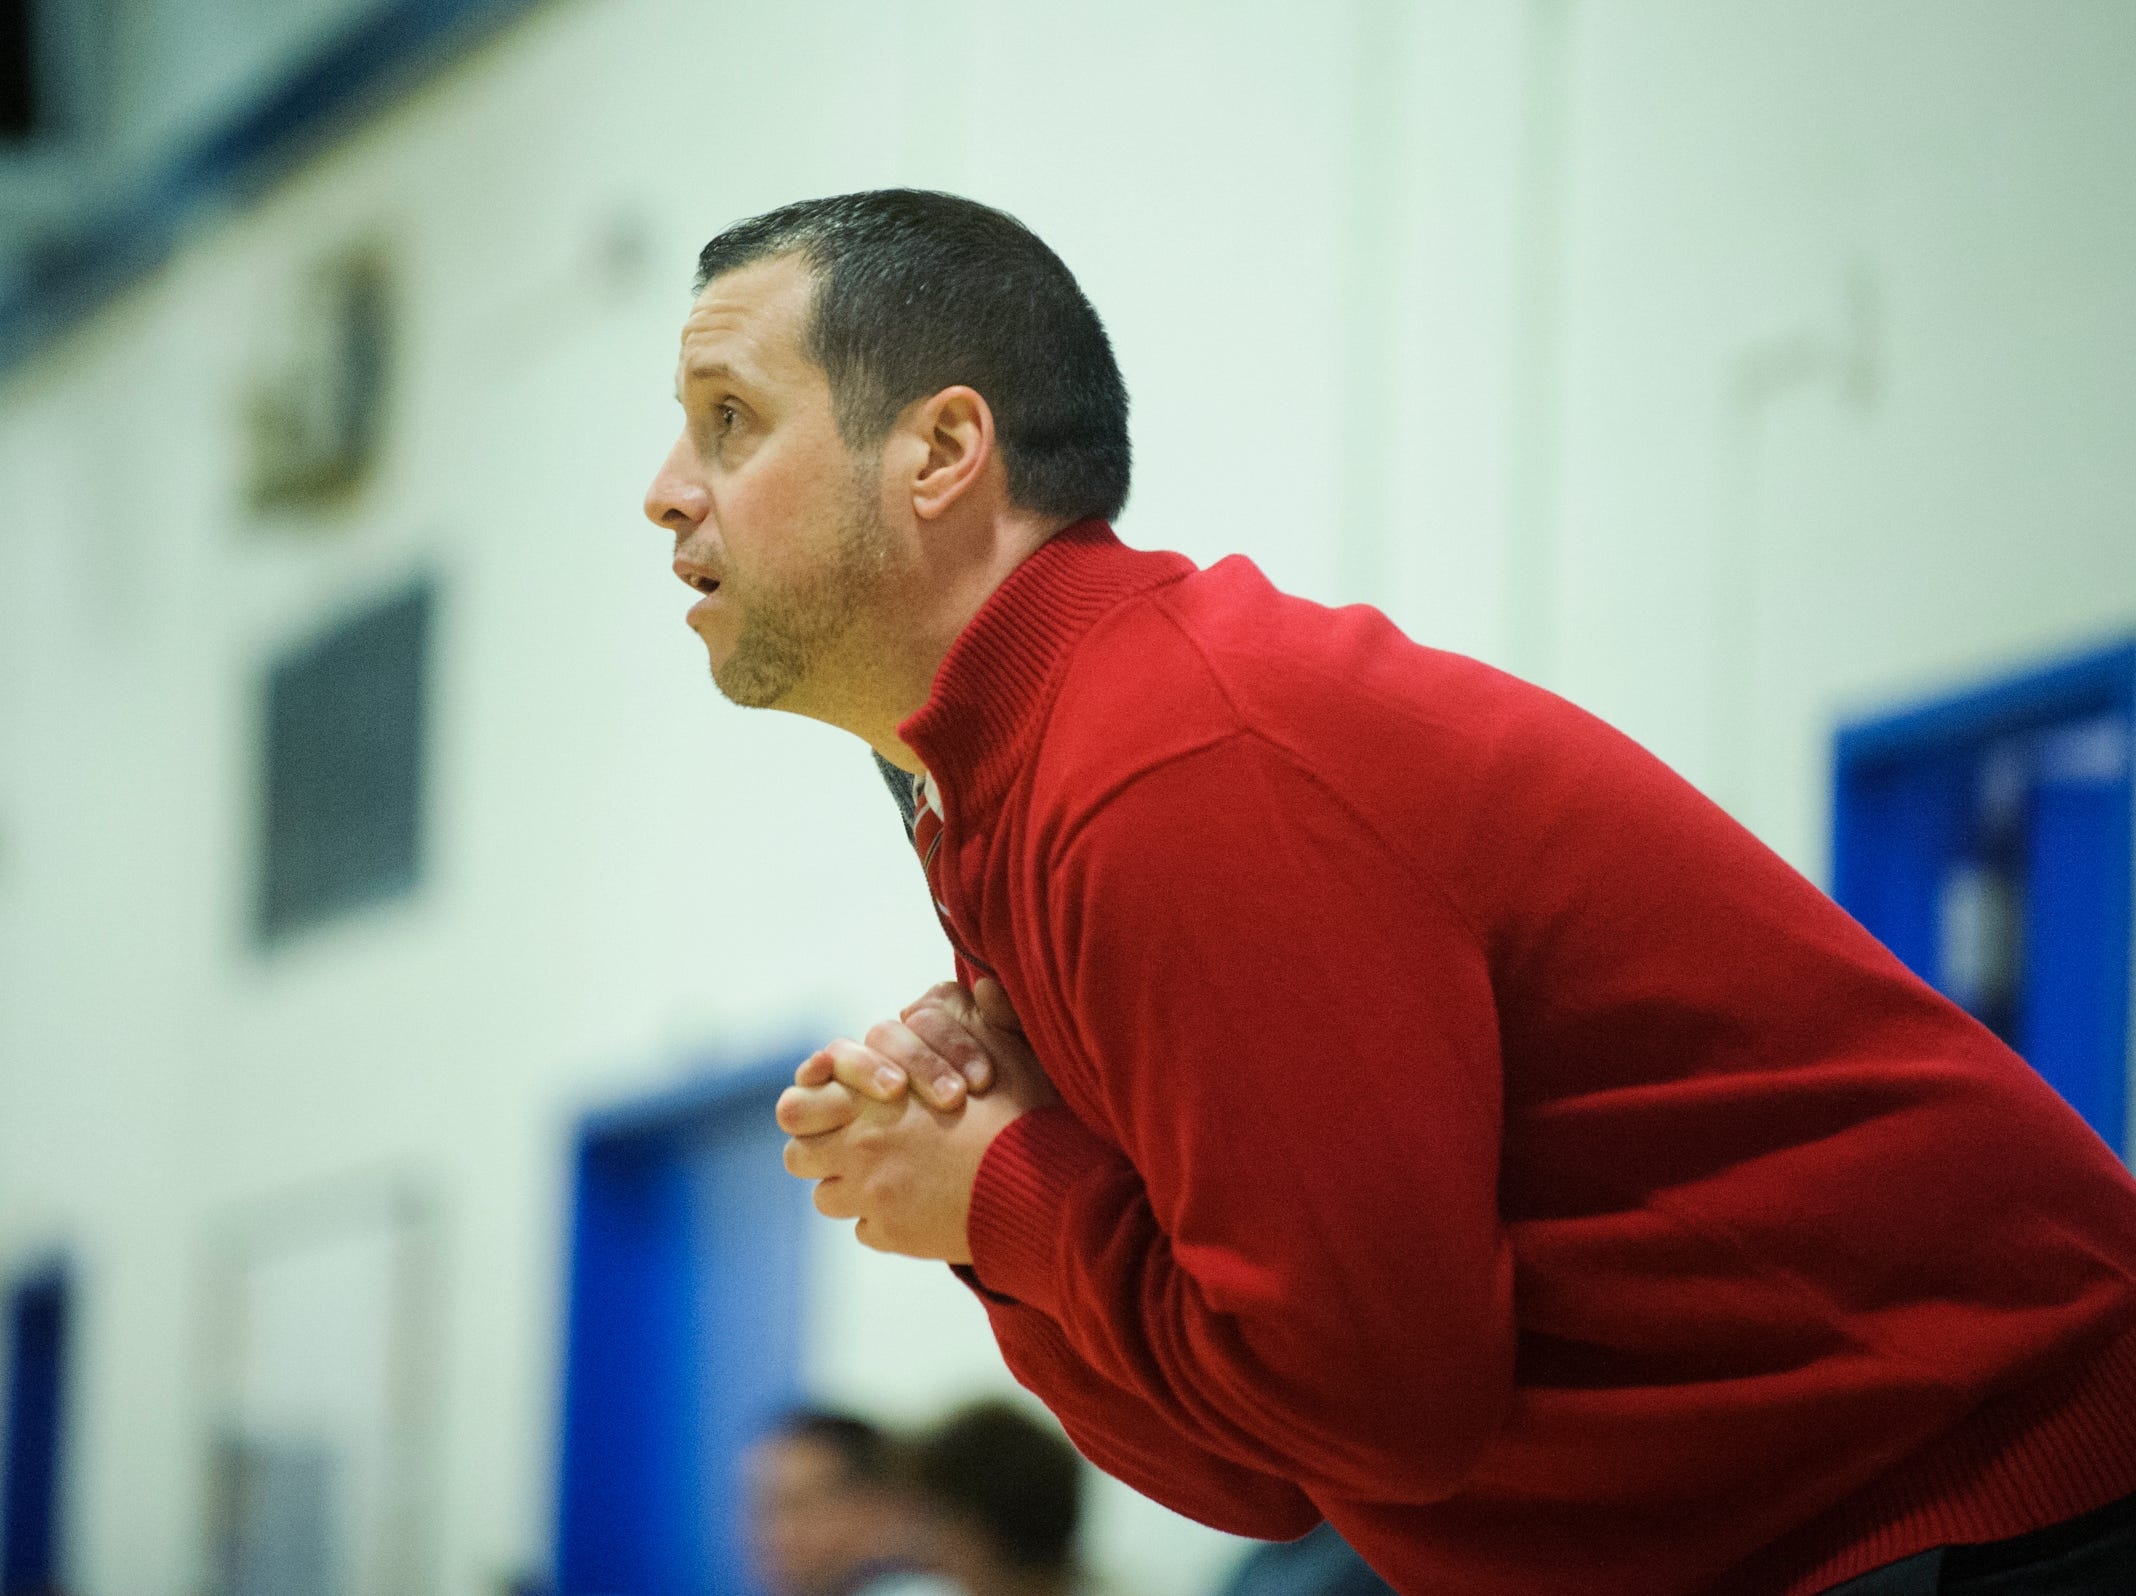 CVU head coach Michael Osborne watches the action on the court during the boys basketball game between the Champlain Valley Union Redhawks and the Mount Mansfield Cougars at MMU High School on Tuesday night January 22, 2019 in Jericho.